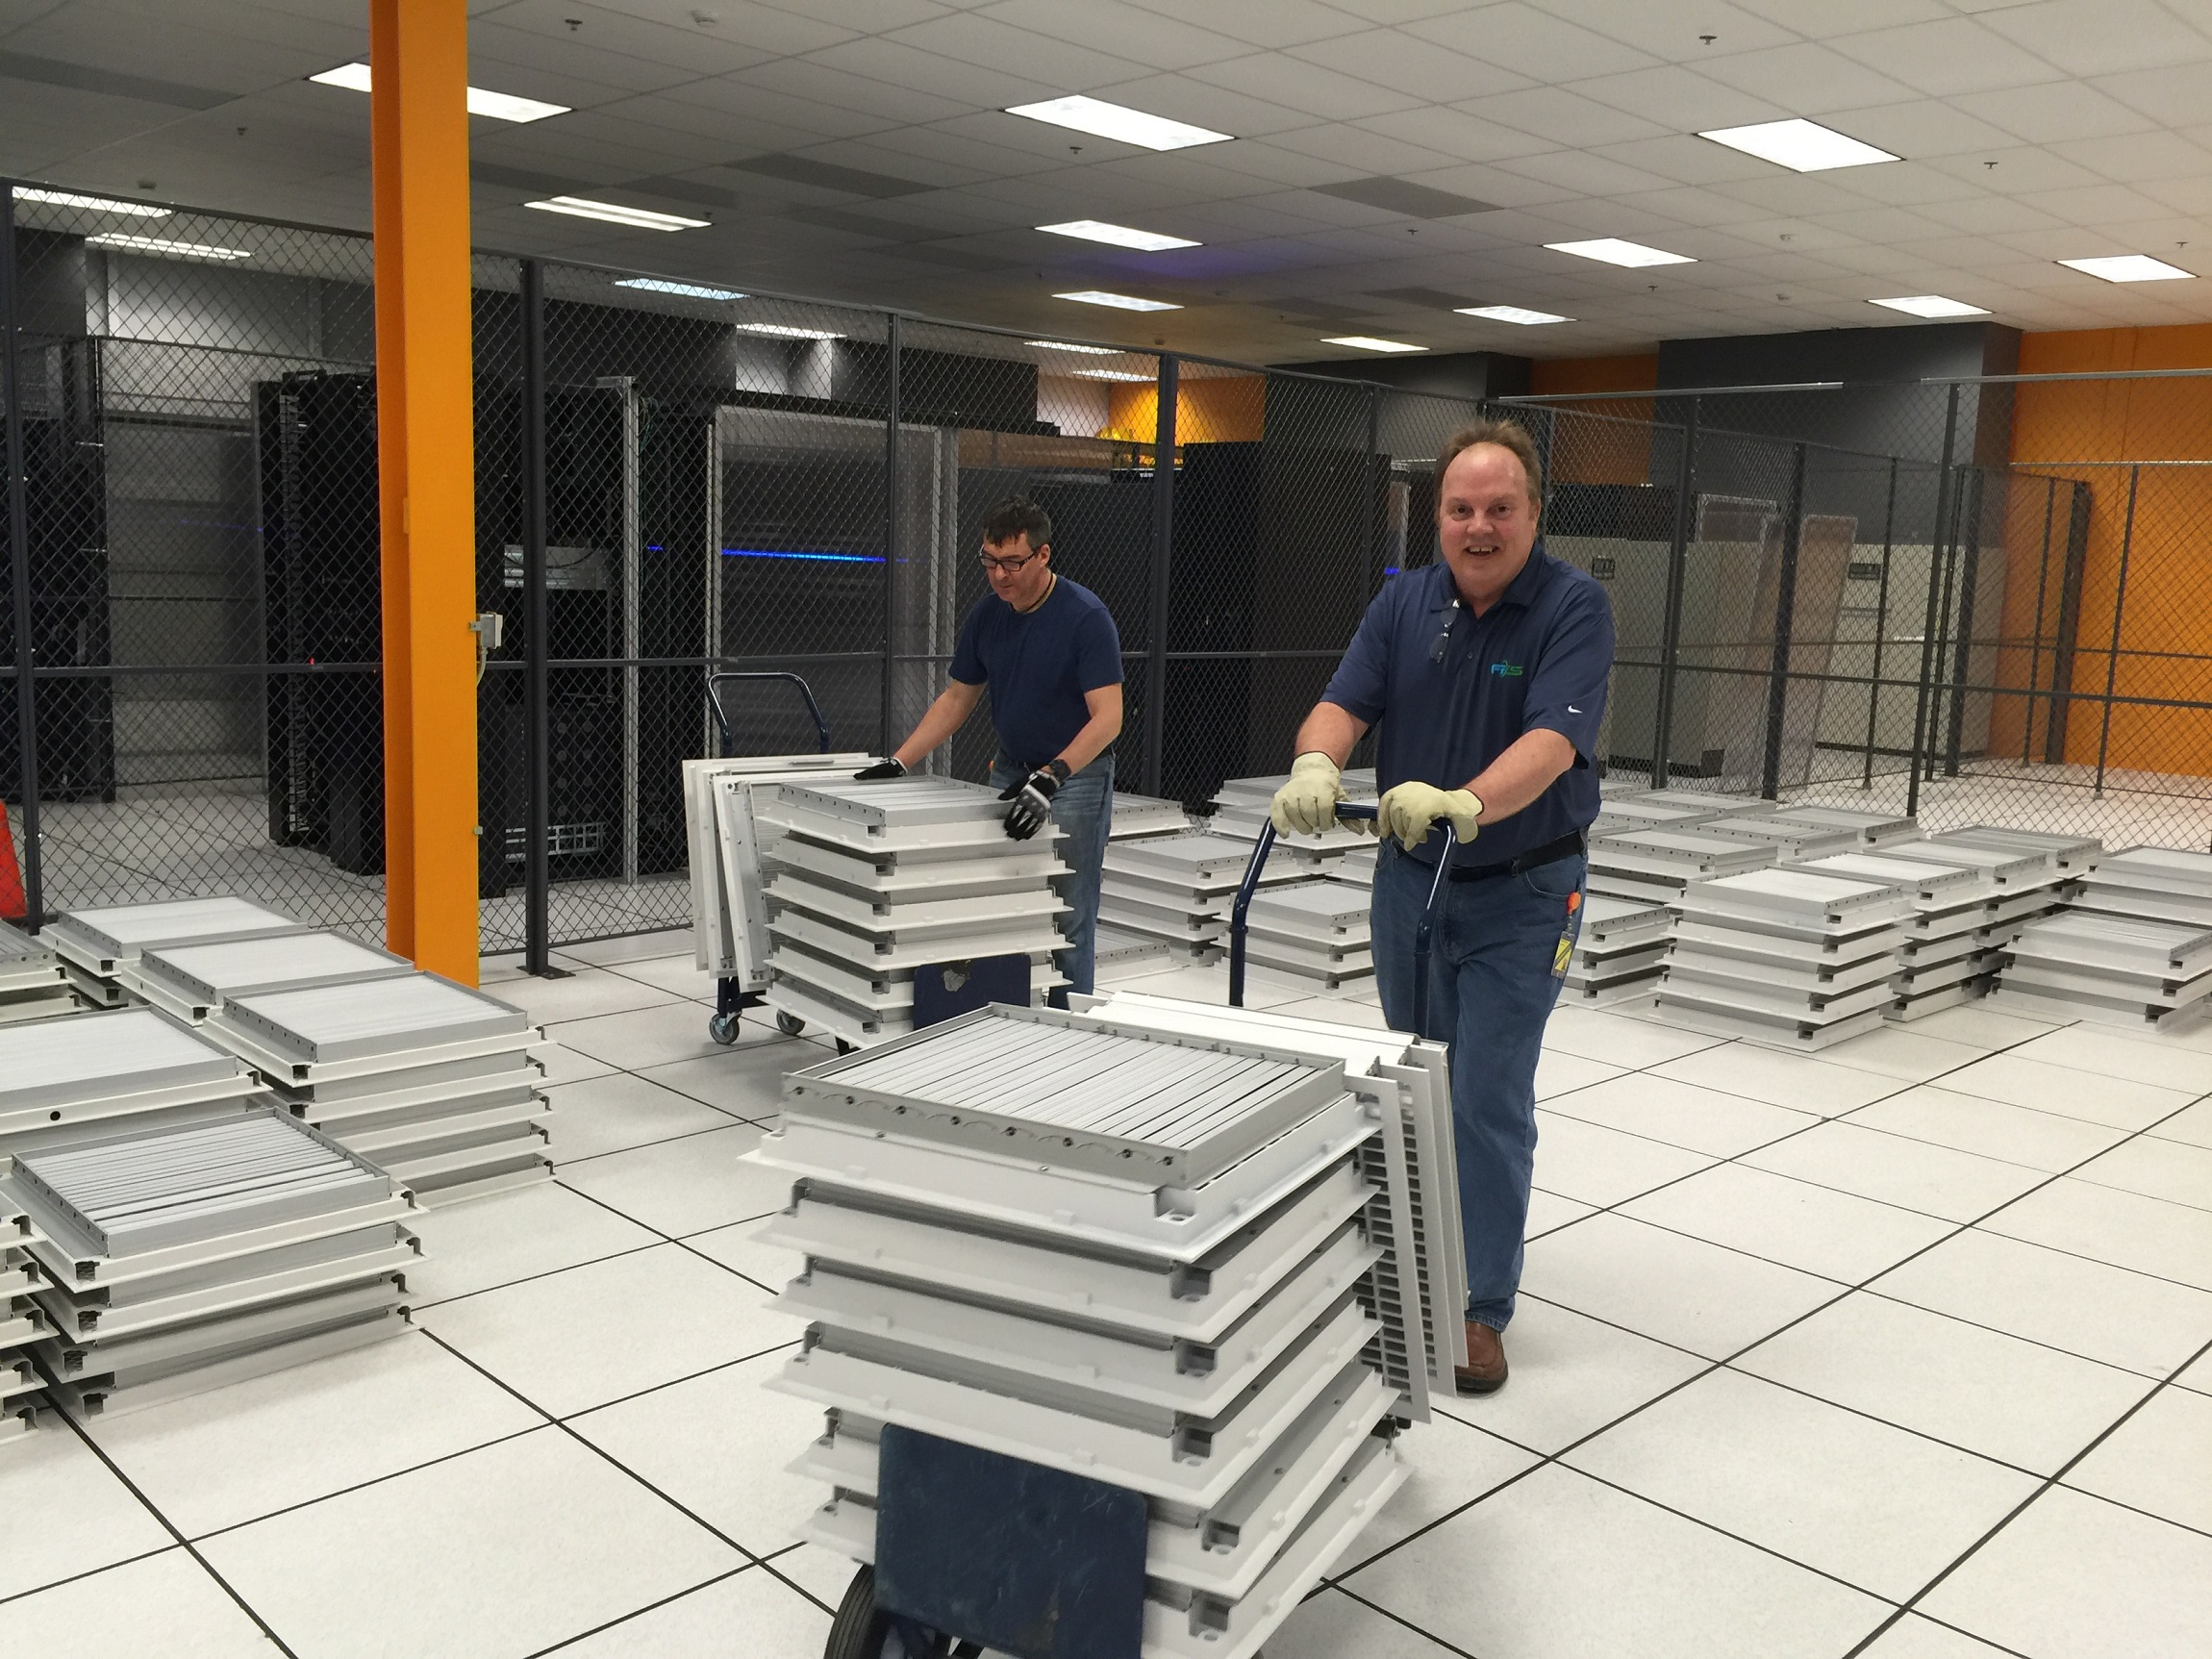 Beyond PUE: Data Center Cooling Efficiency